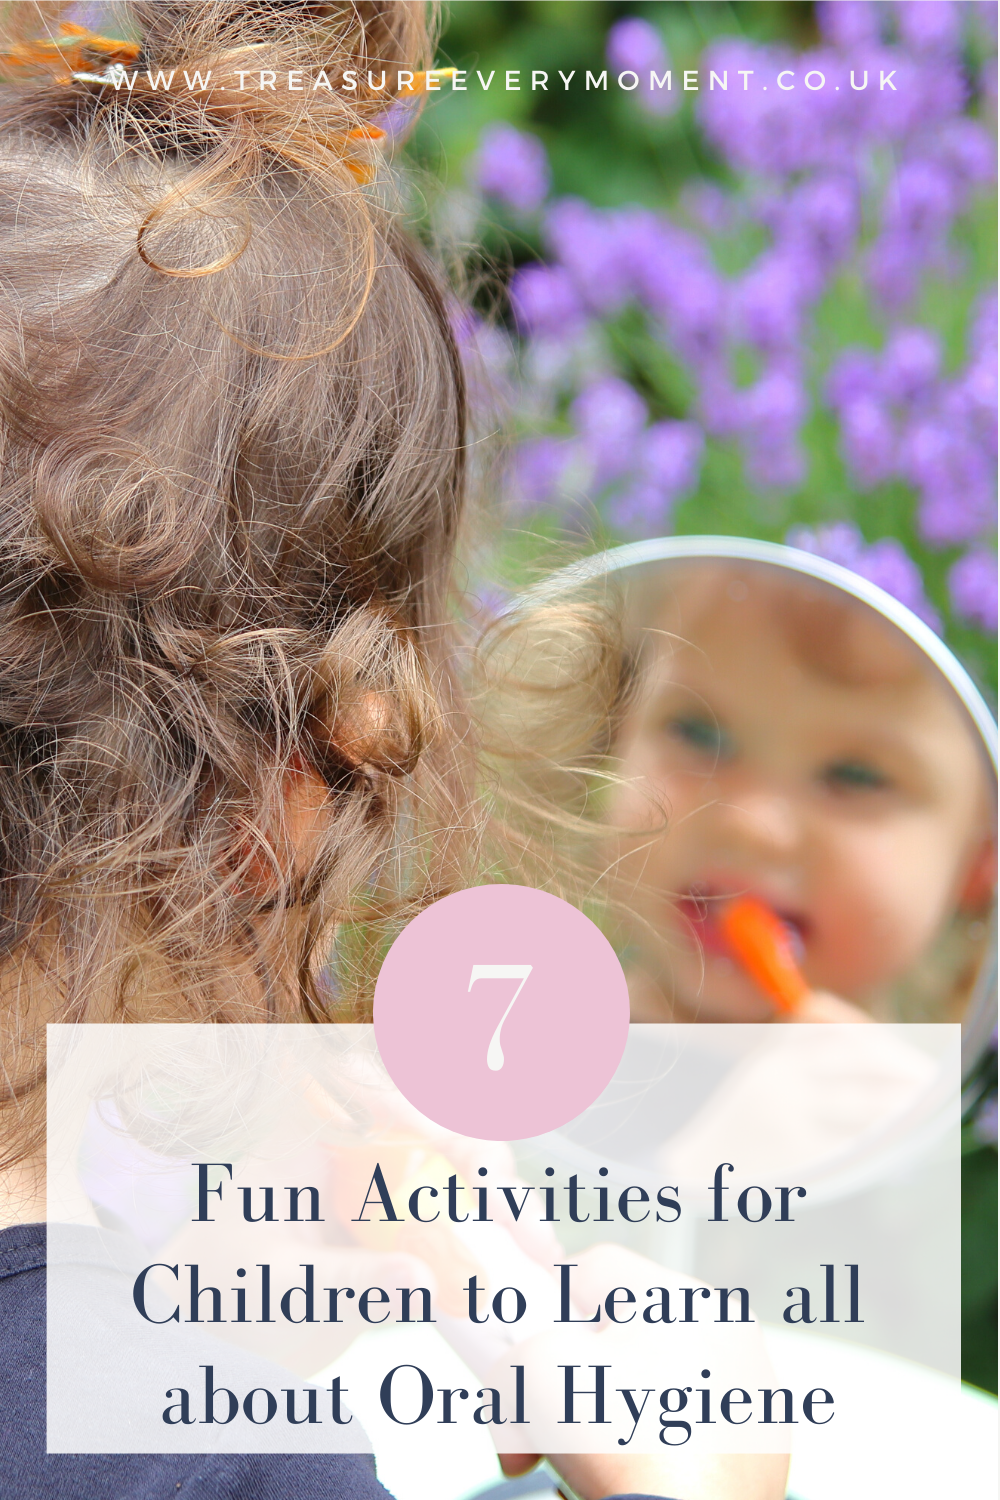 CHILDREN: 7 Fun Activities for Learning all about Oral Hygiene